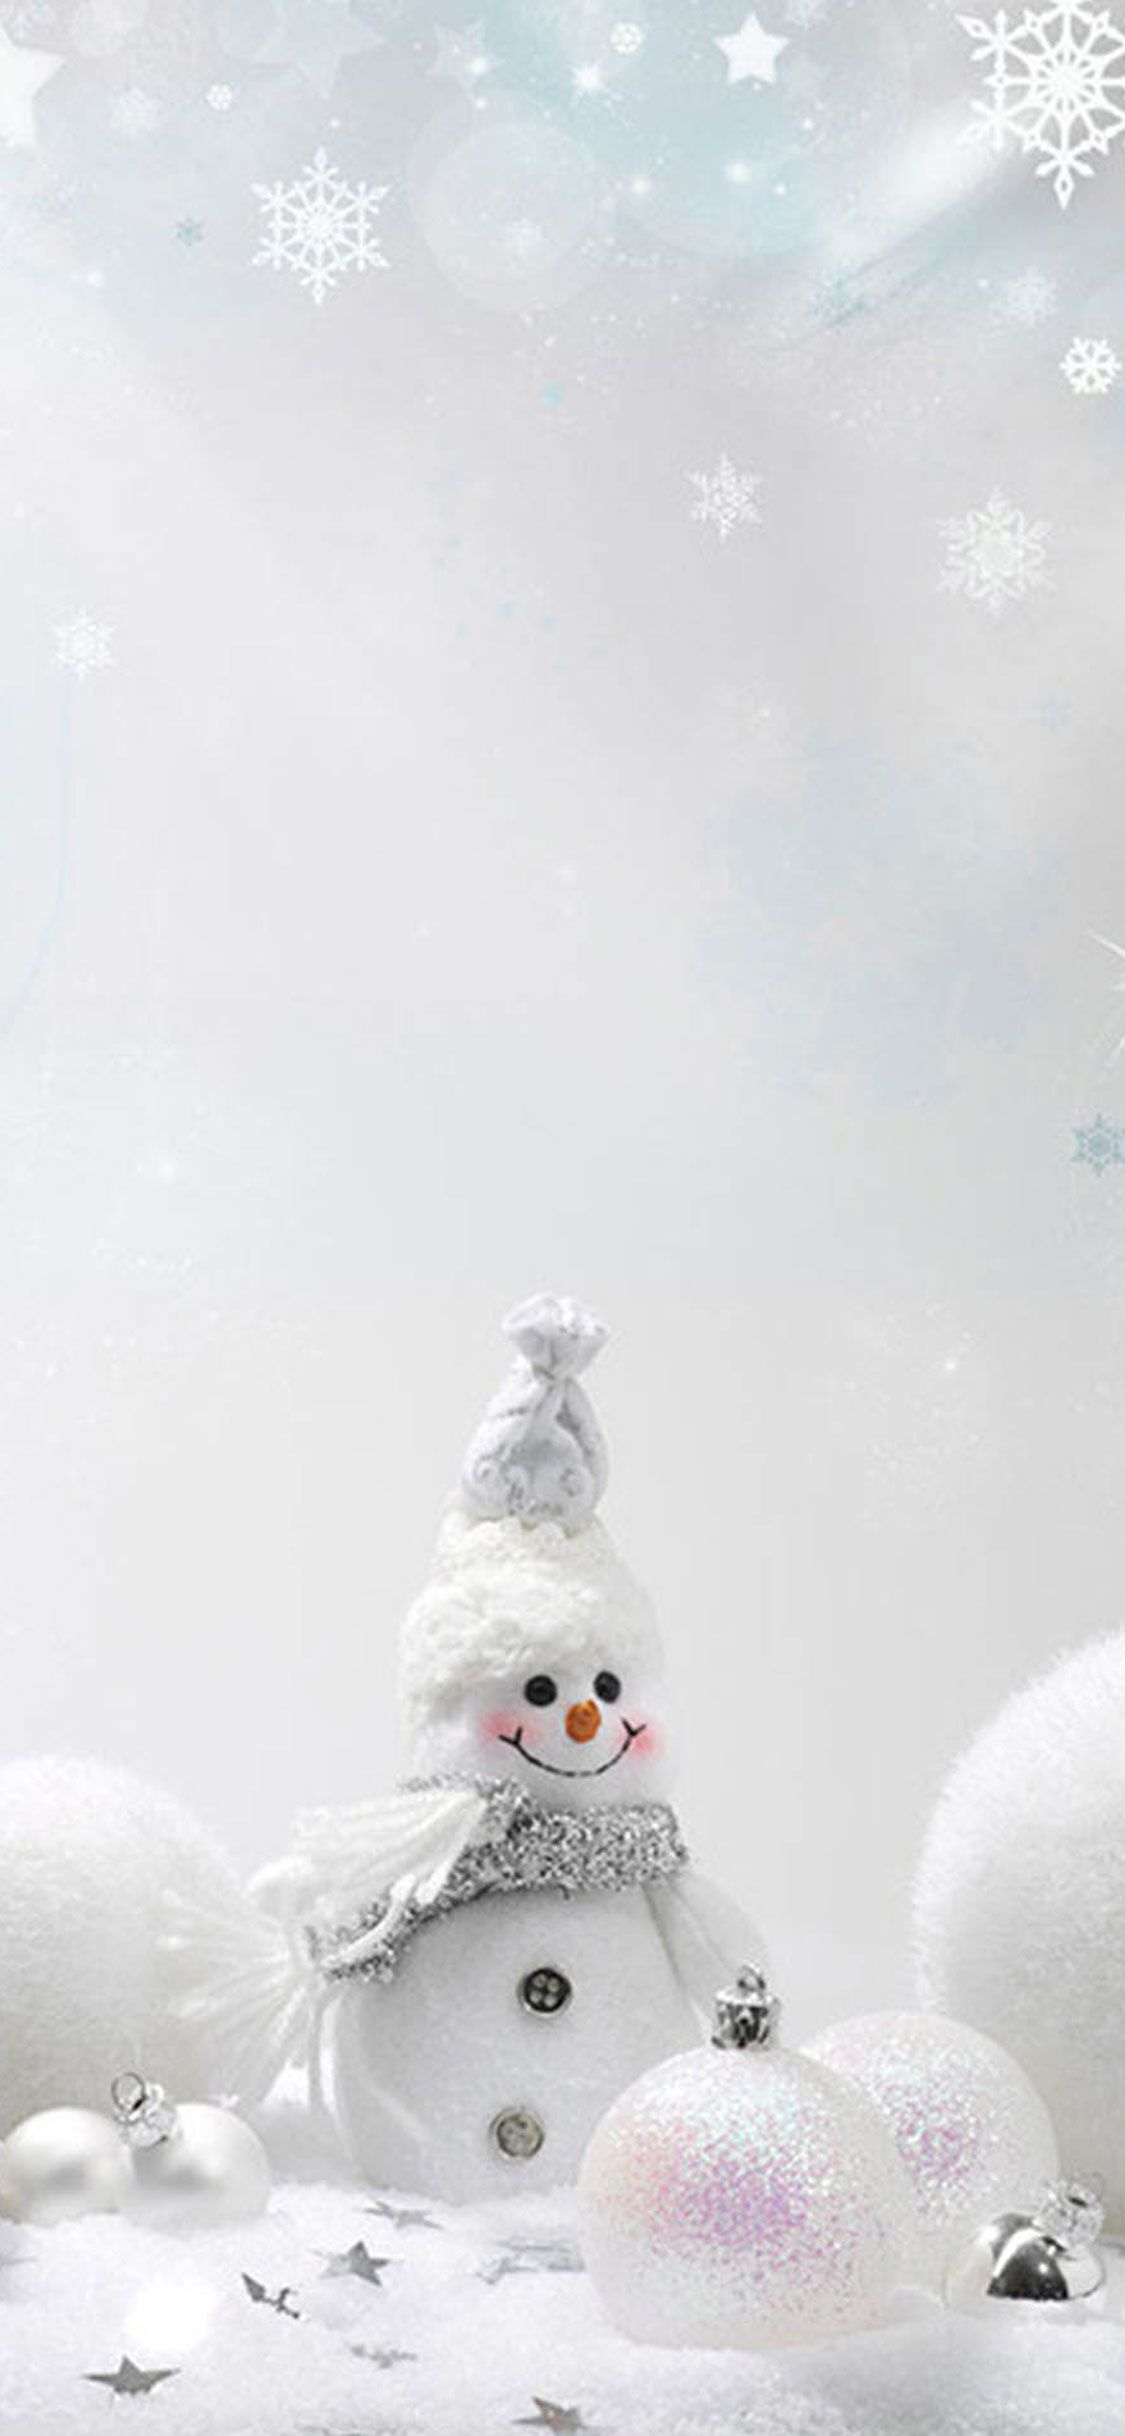 Snow Christmas Iphone Wallpapers Top Free Snow Christmas